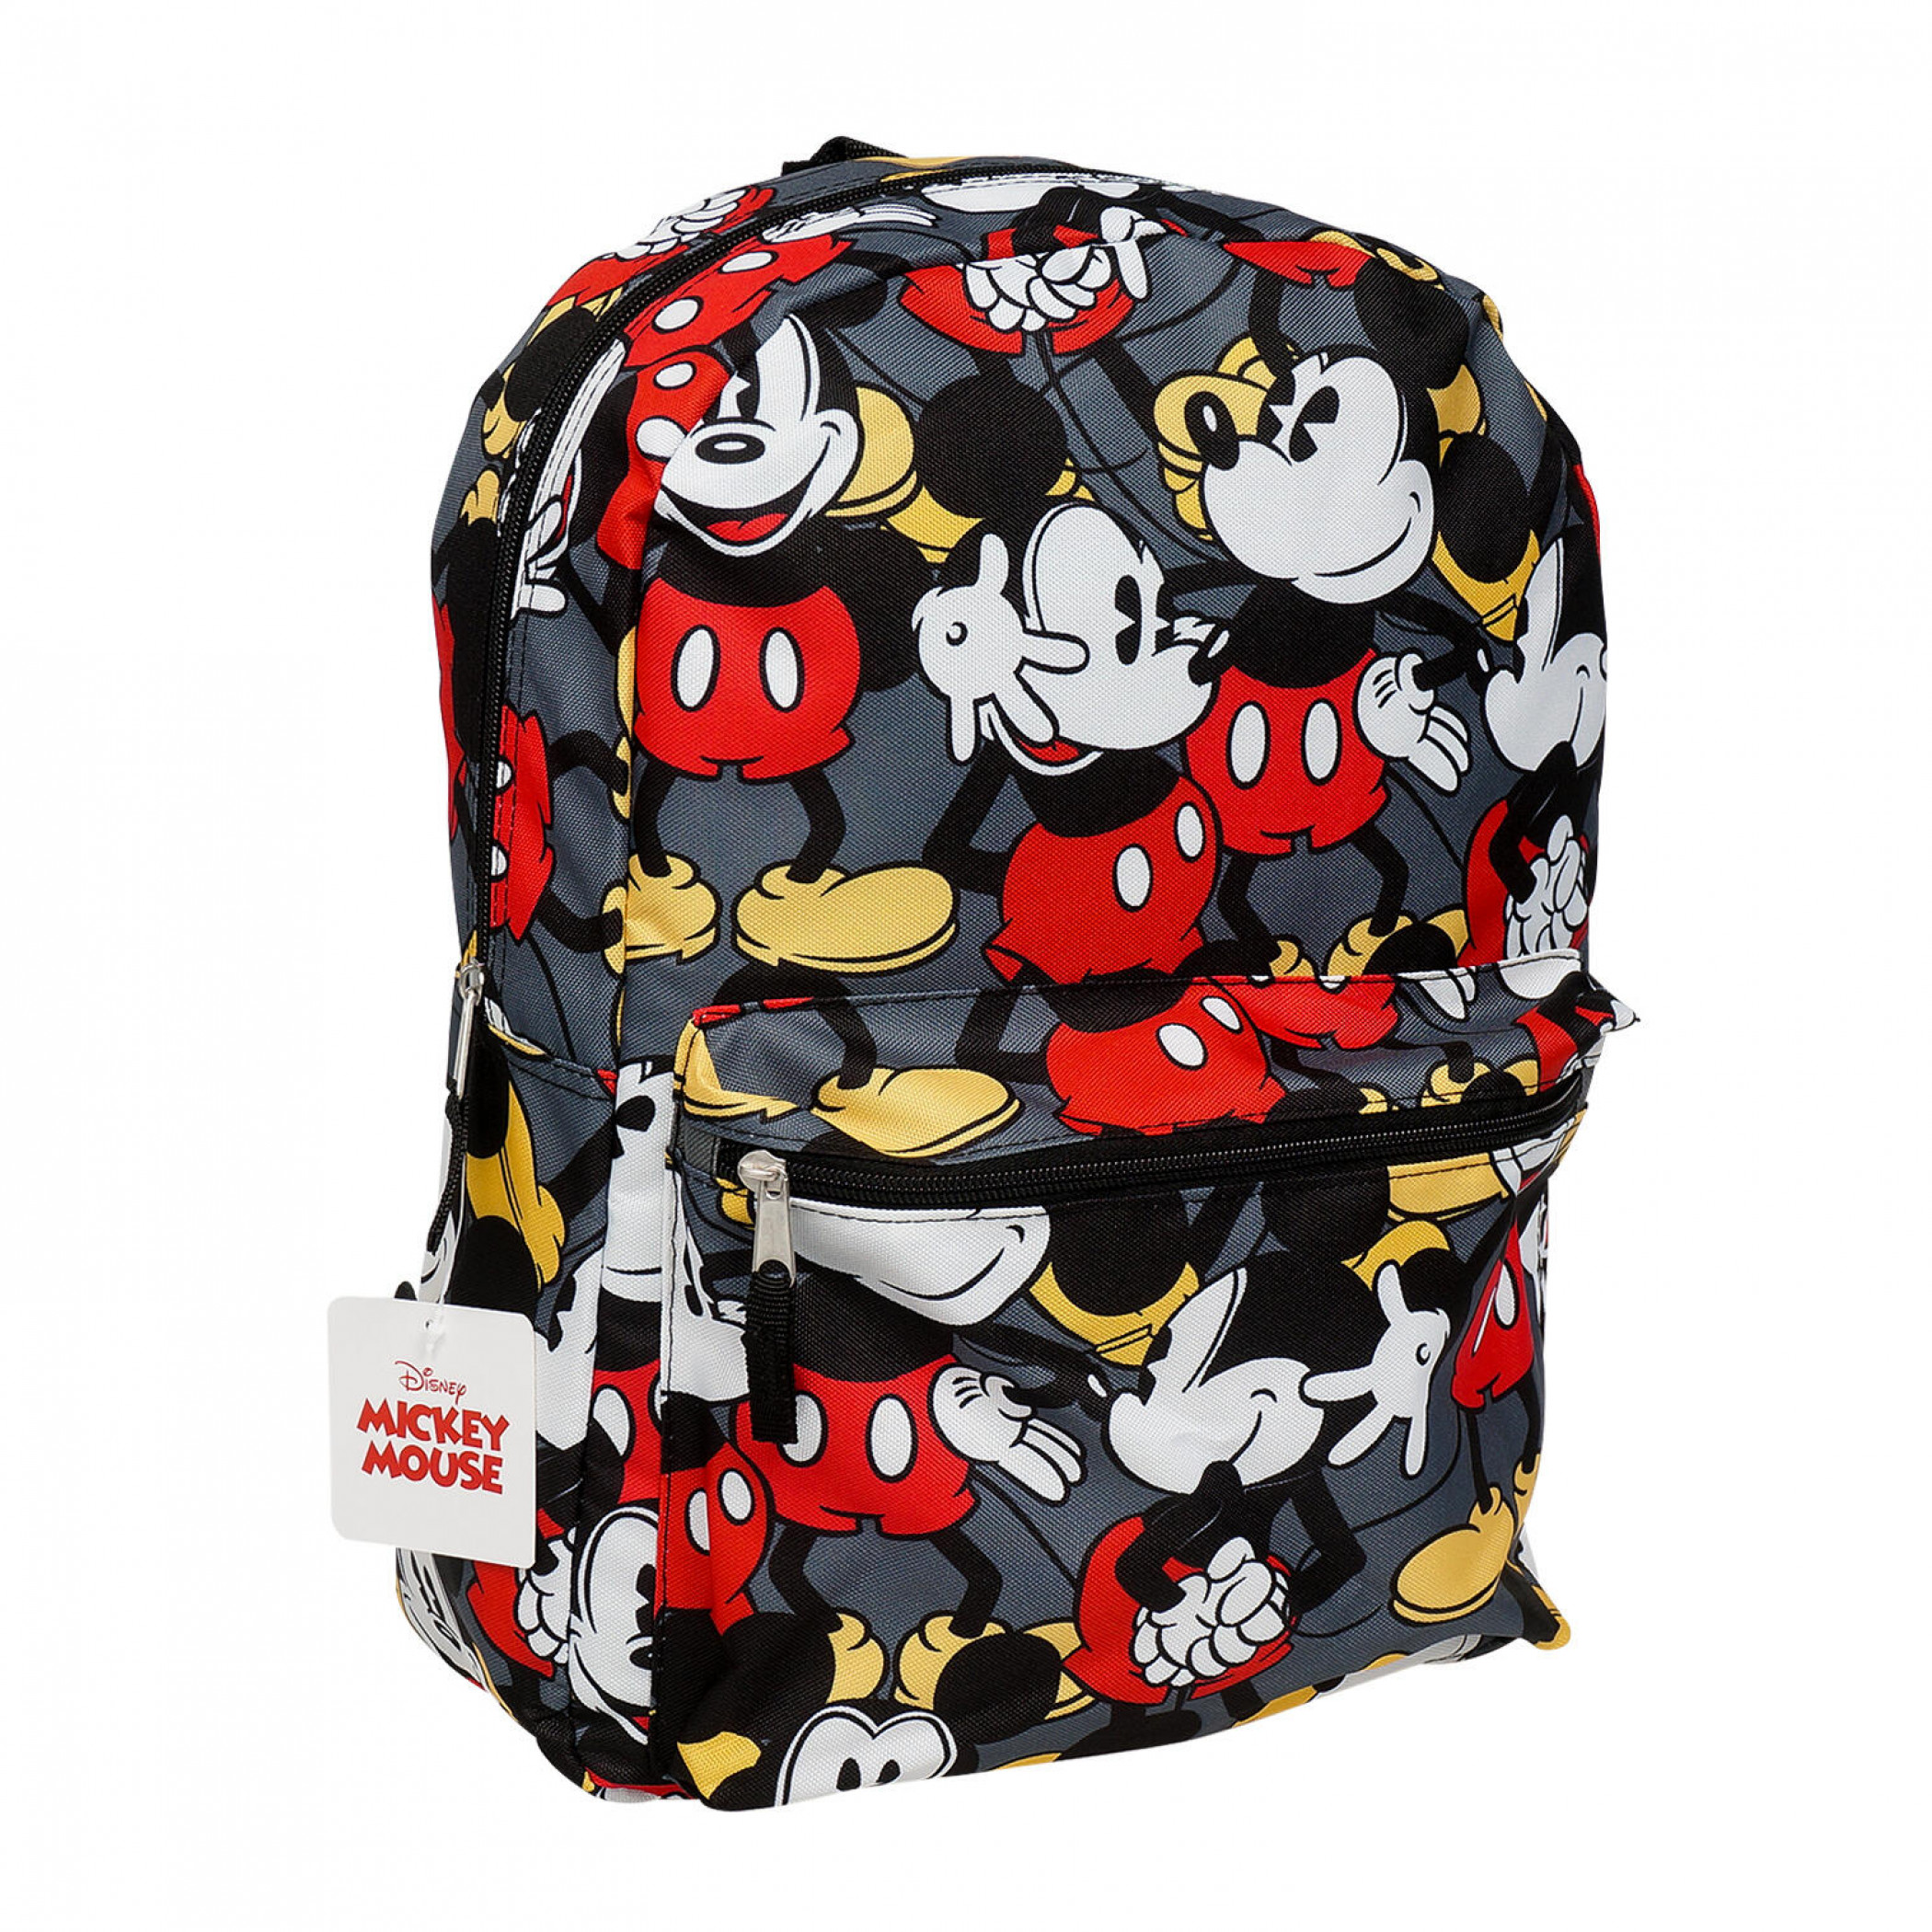 Disney Mickey Mouse Character All Over Print Backpack